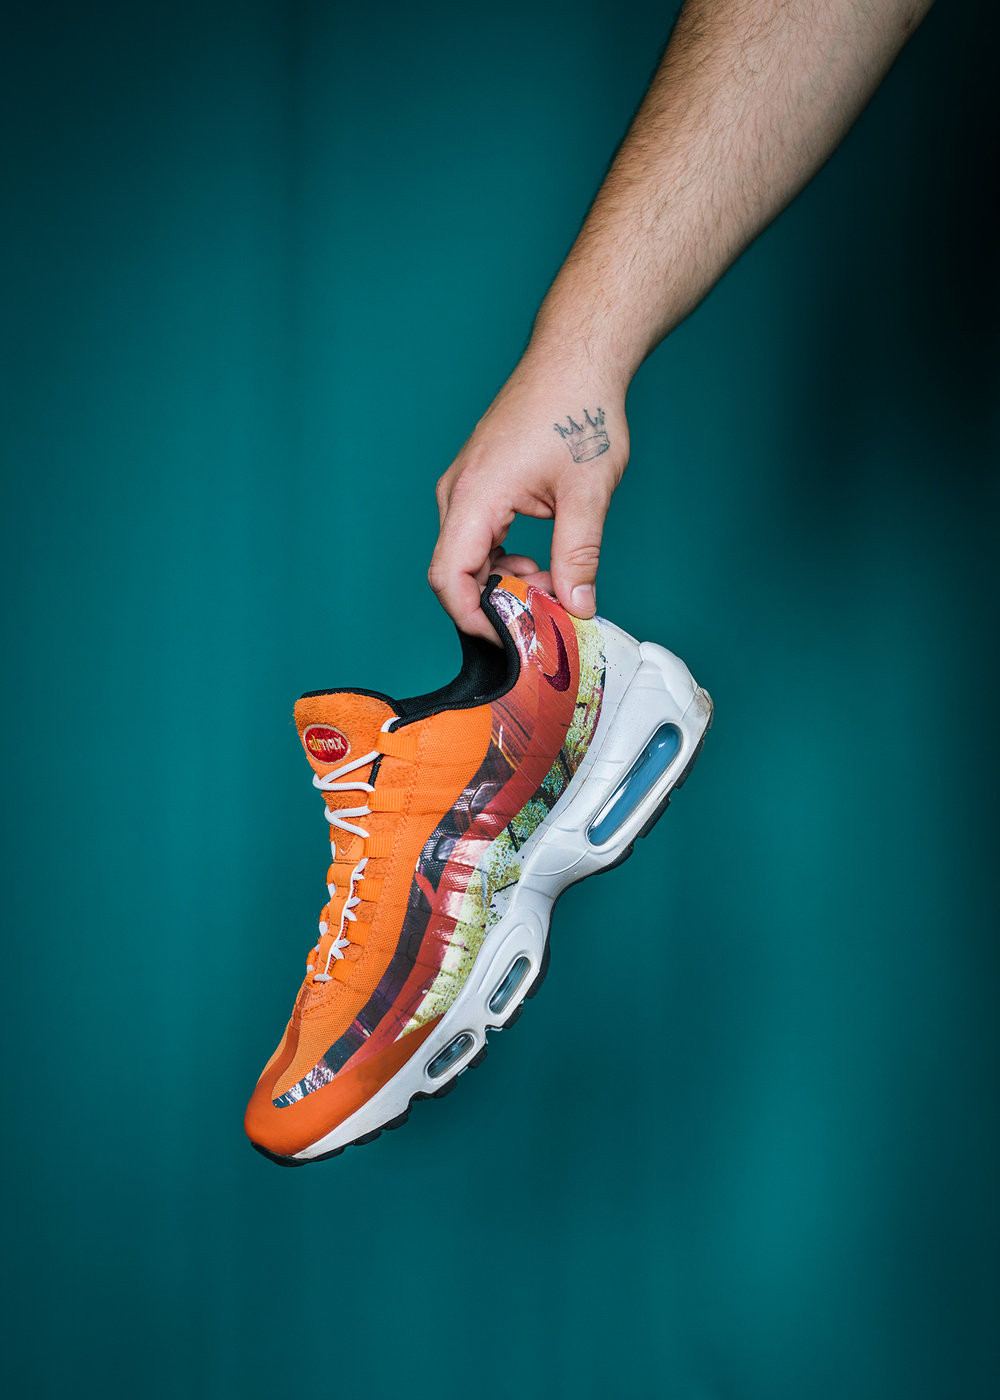 His Nike Air Max 95 collaboration between Size? and British artist Dave White